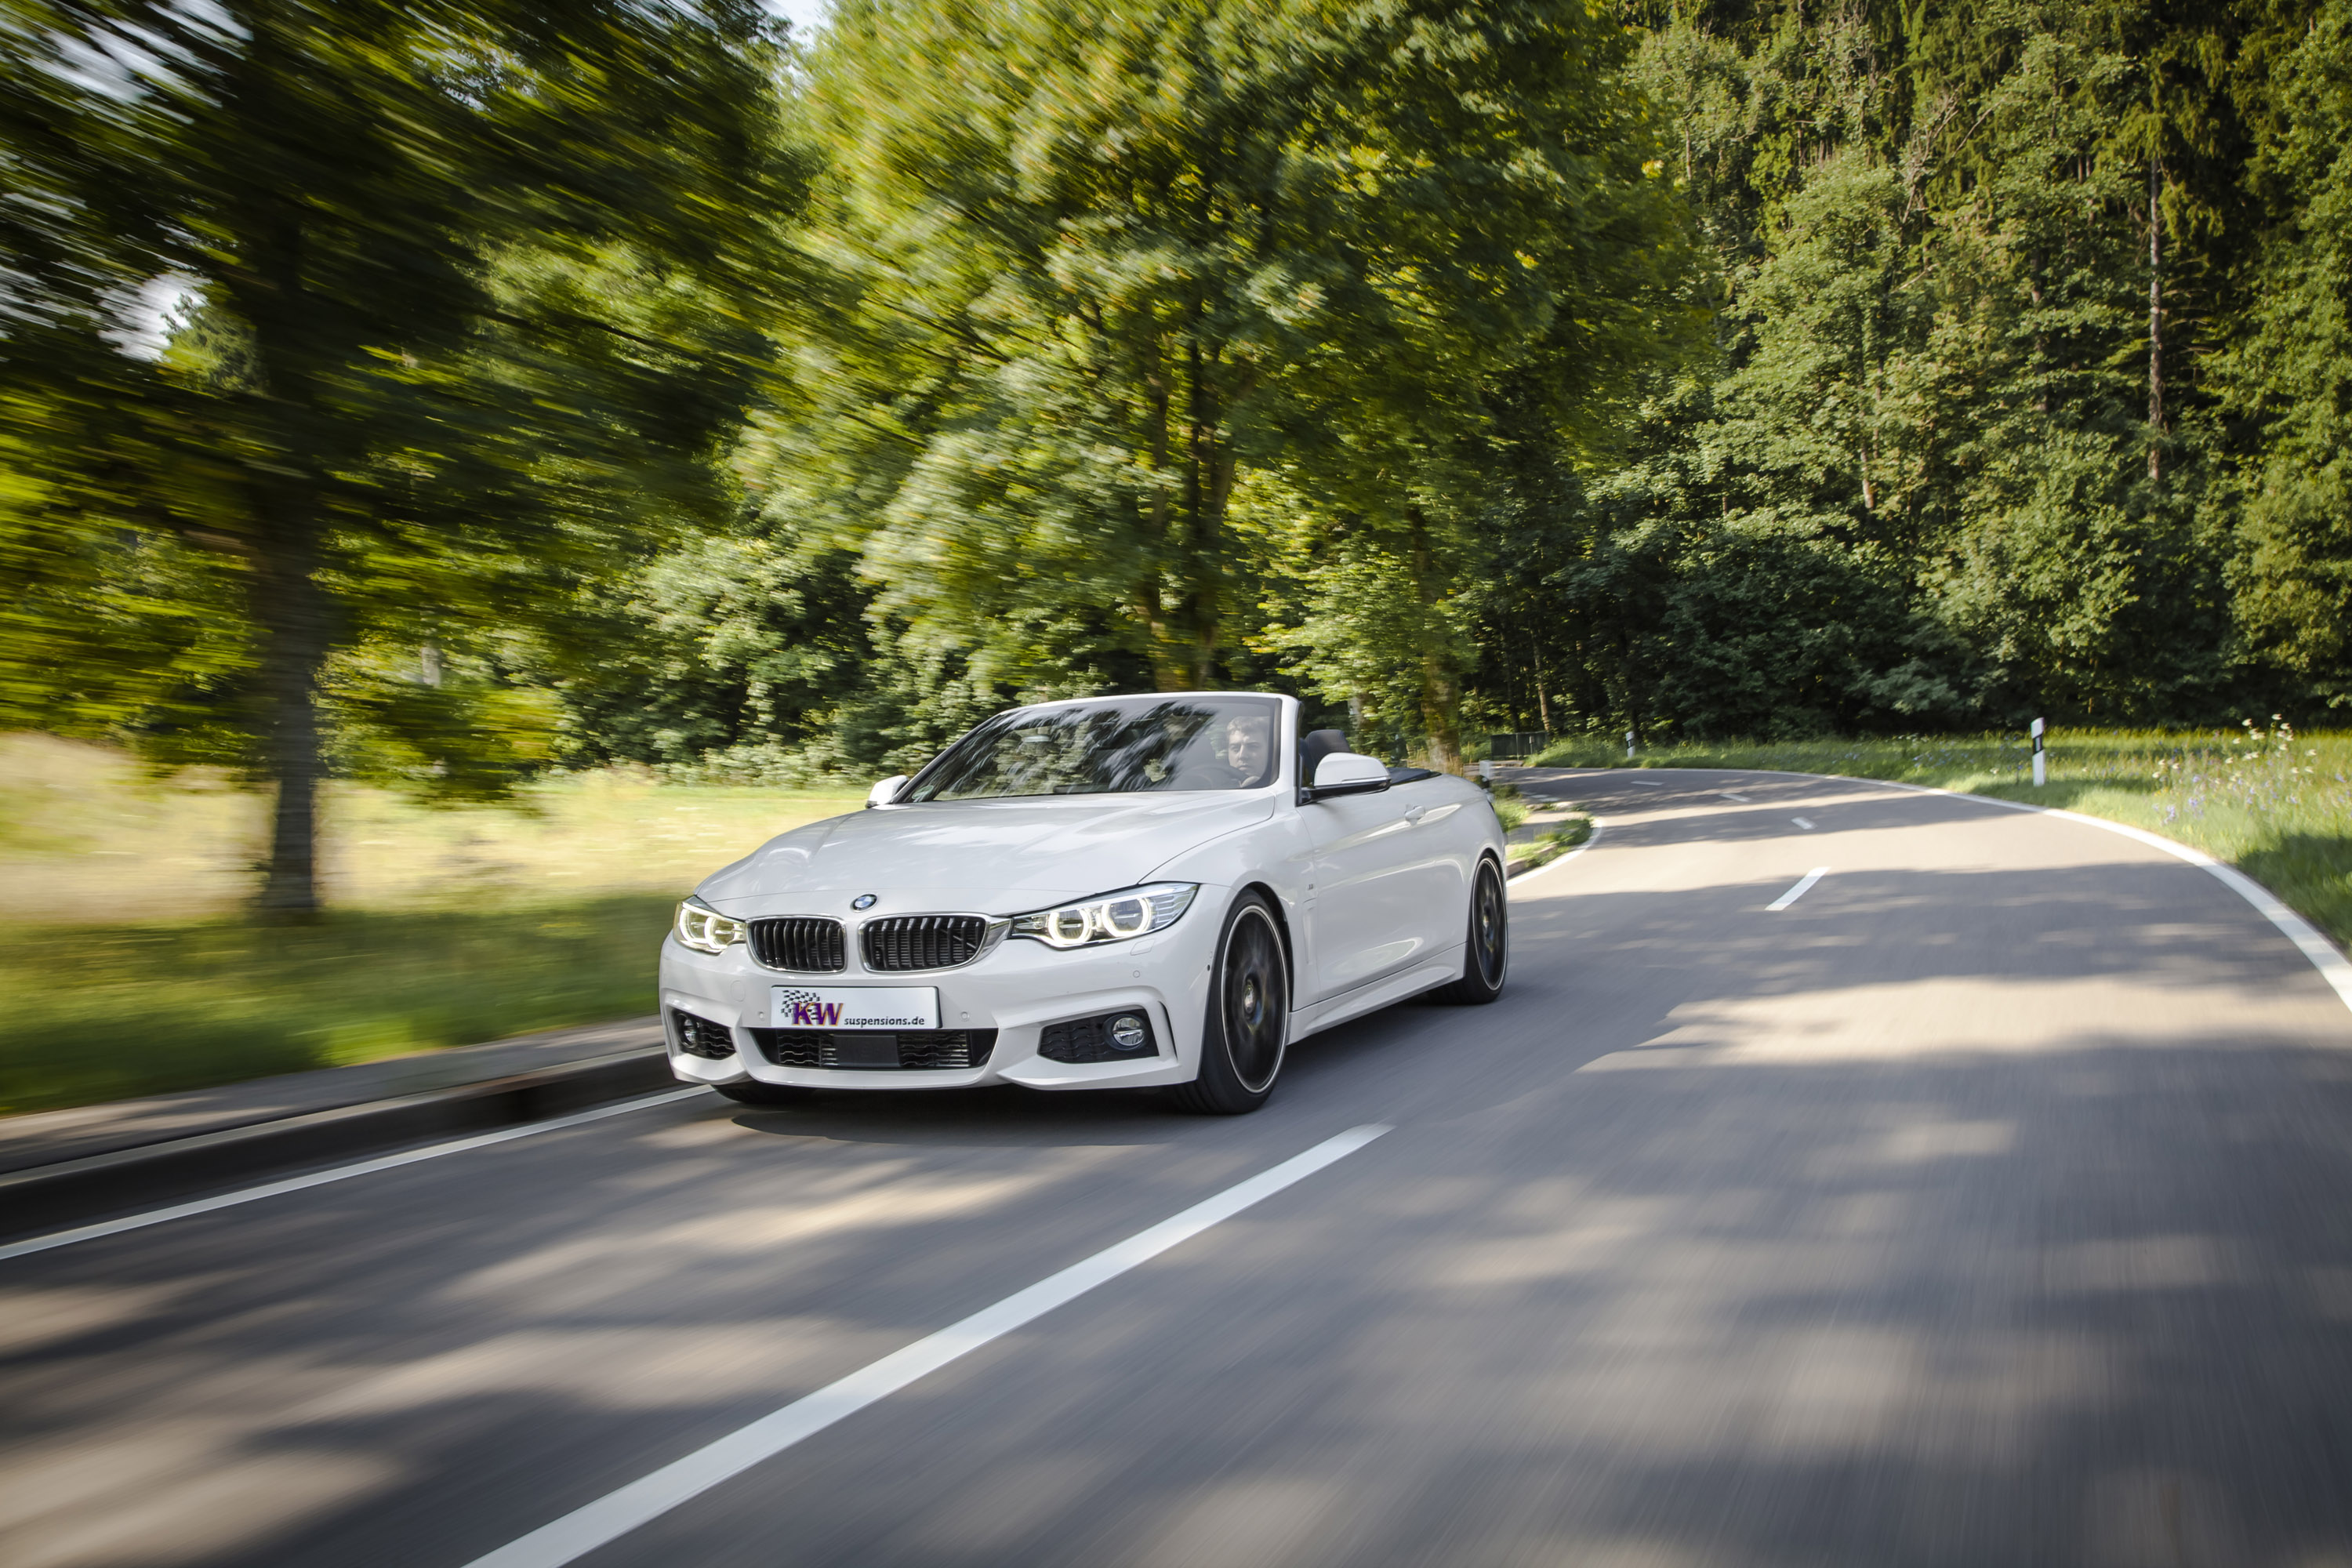 Kw Coilover Kits For Bmw 4 Series Convertible Video